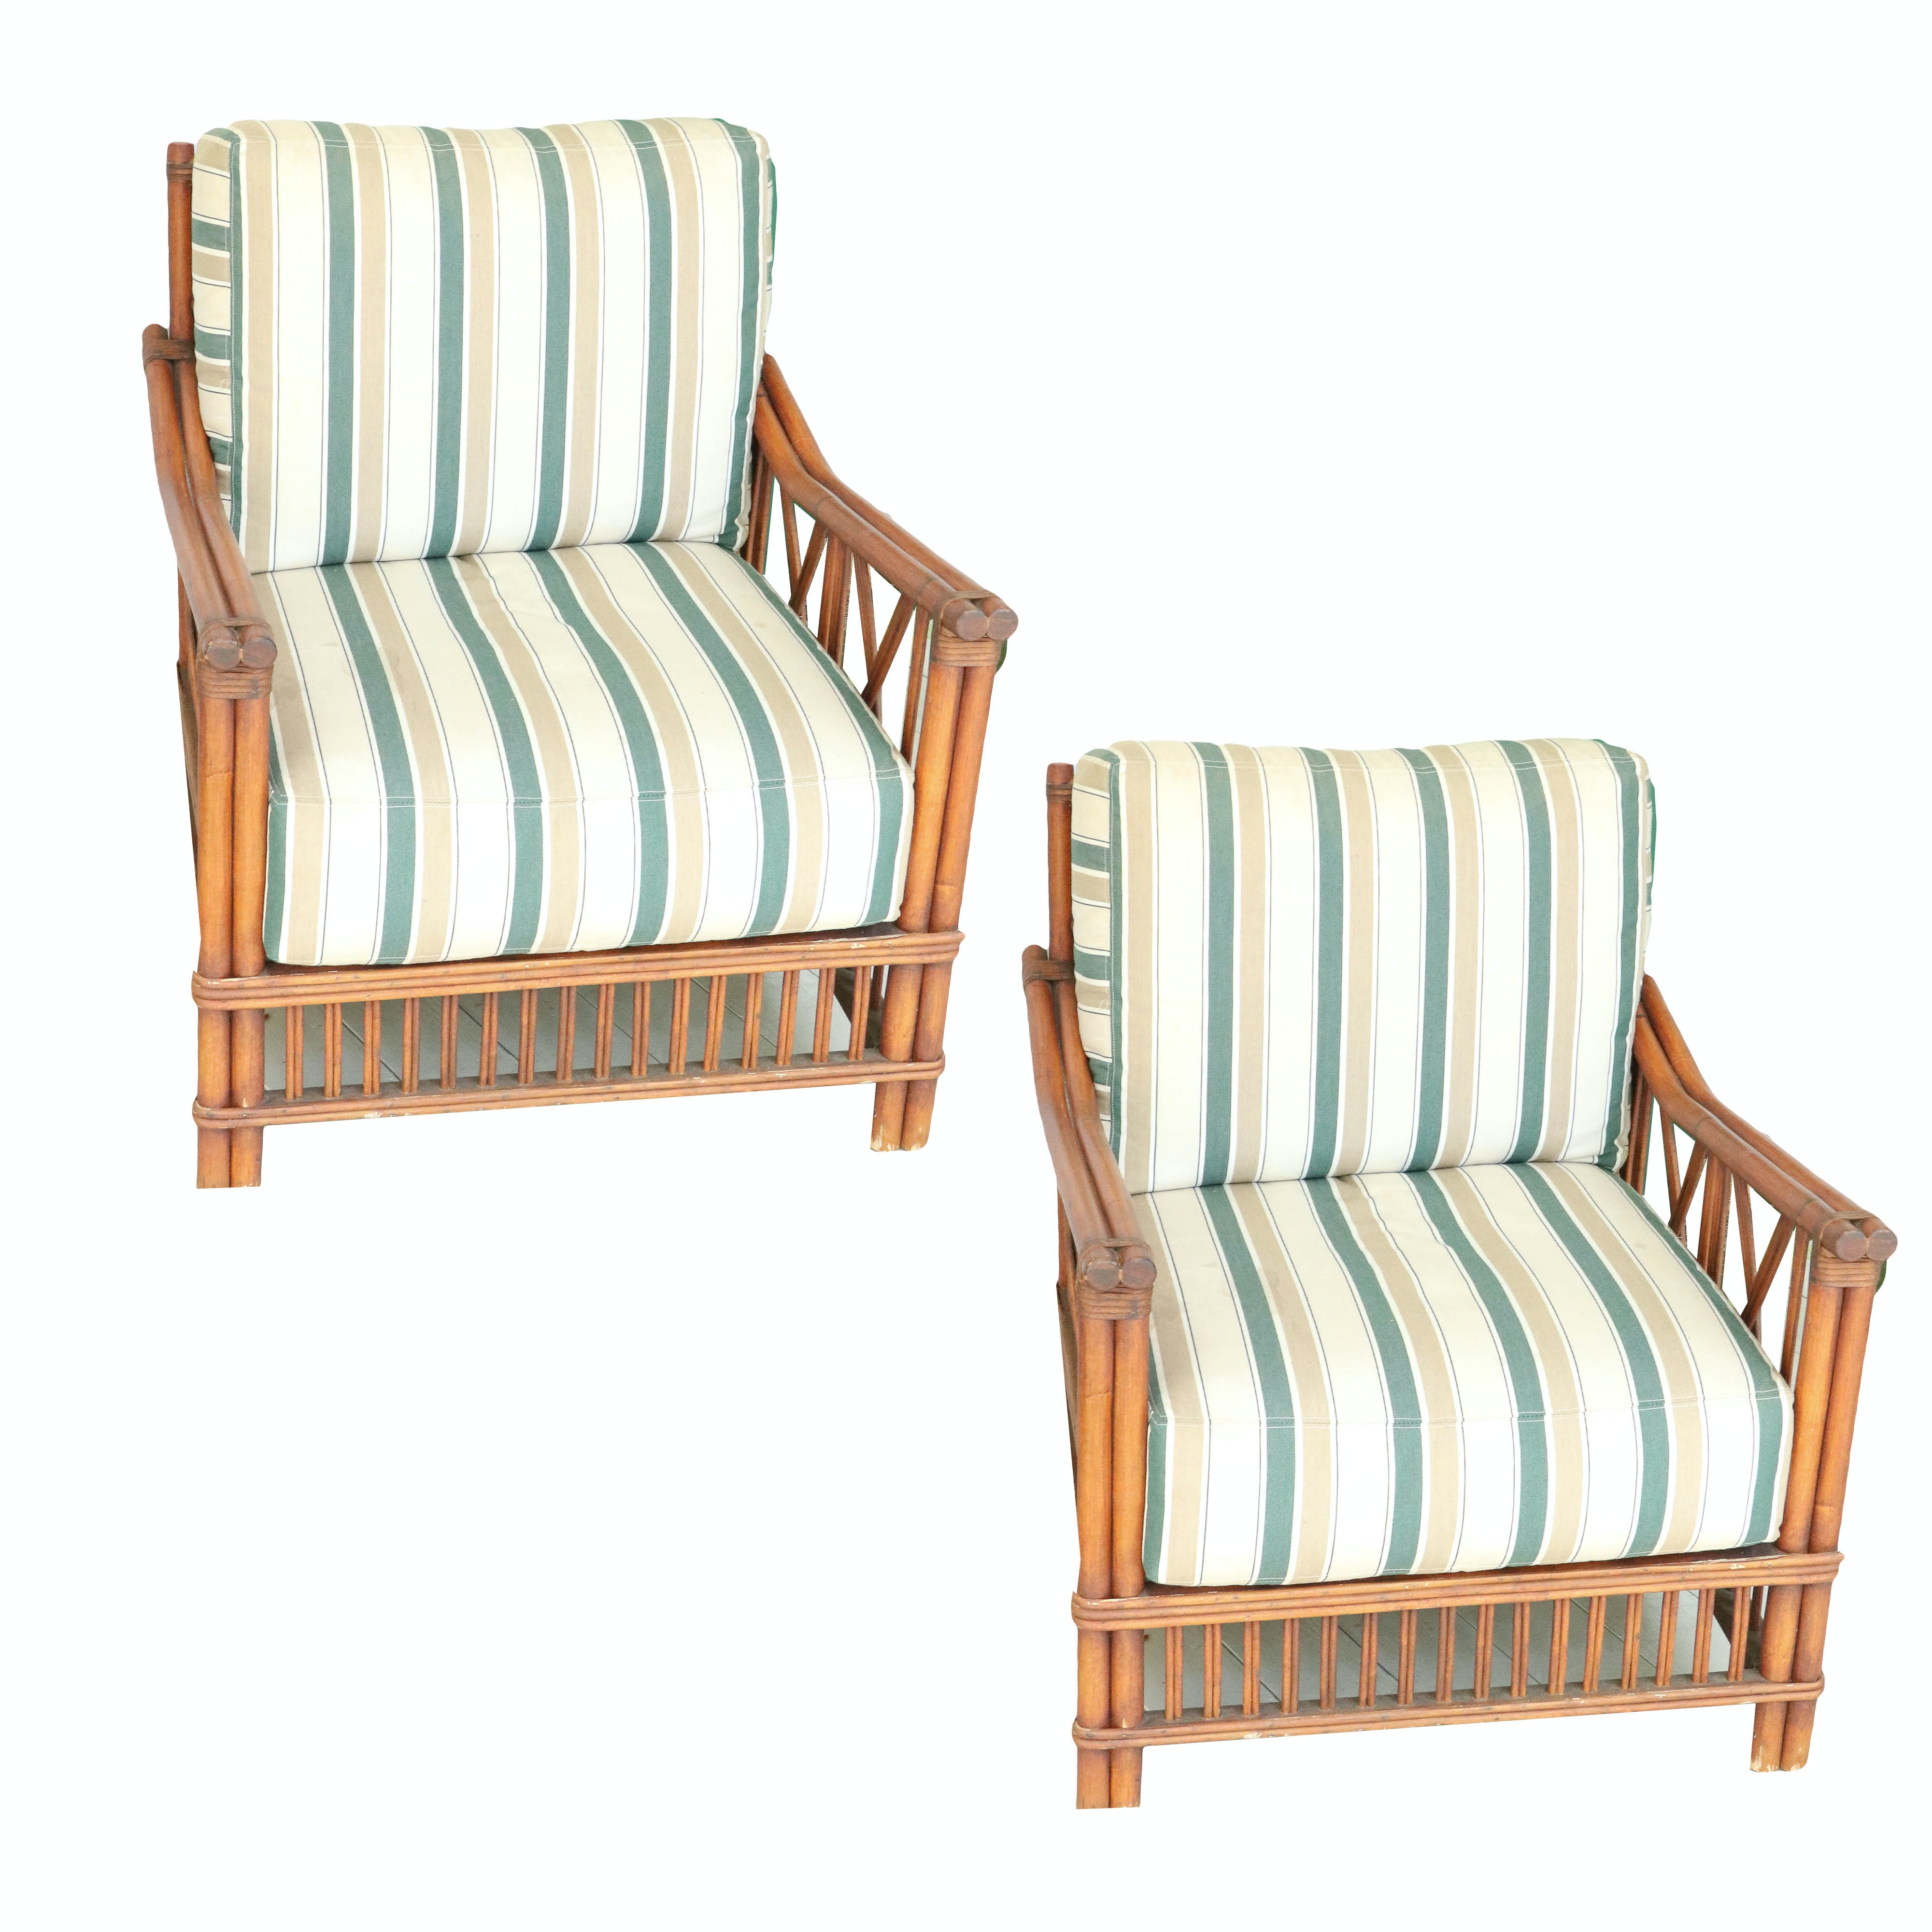 Rattan Patio Armchairs with Back and Seat Cushions